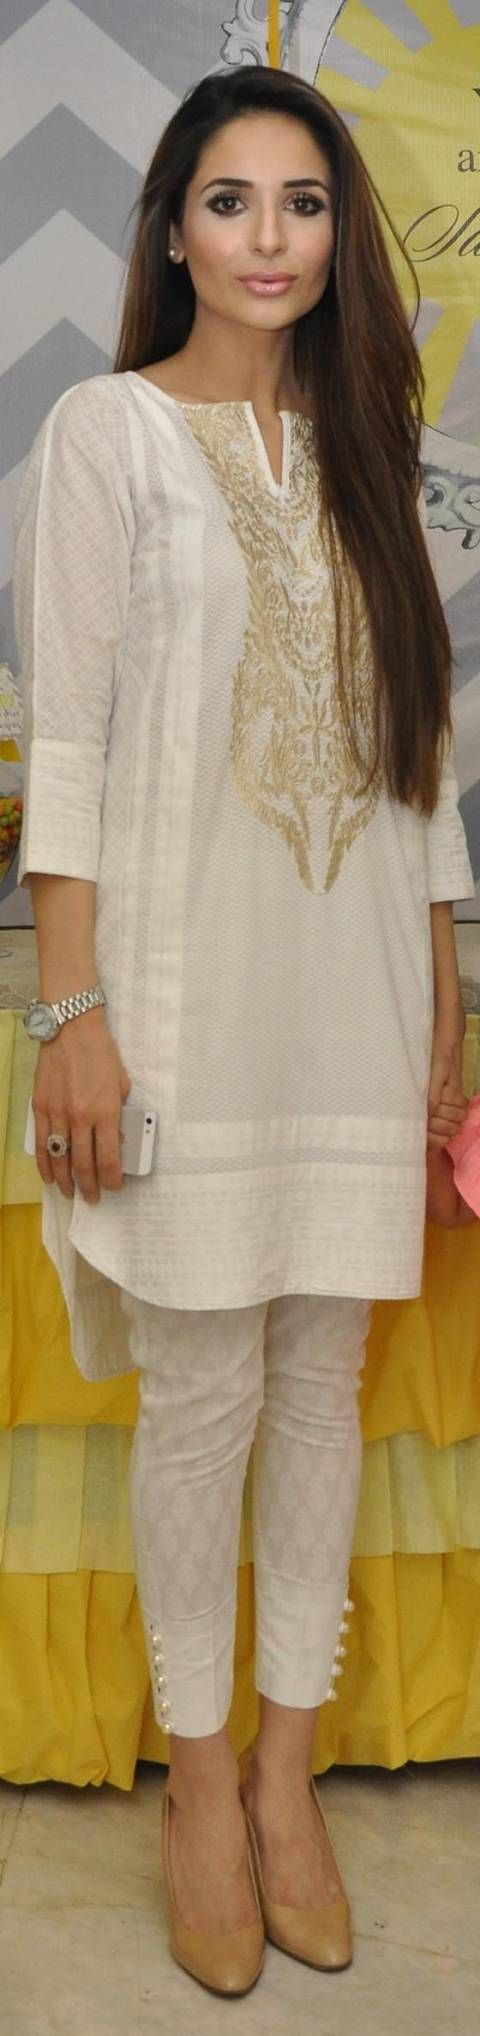 THIS WEEKS BEST DRESSED: 5th JUNE - Dee comments: nice white Salwar Kameez suit, but where is the Dupatta to match? http://www.noellesnakedtruth.com/